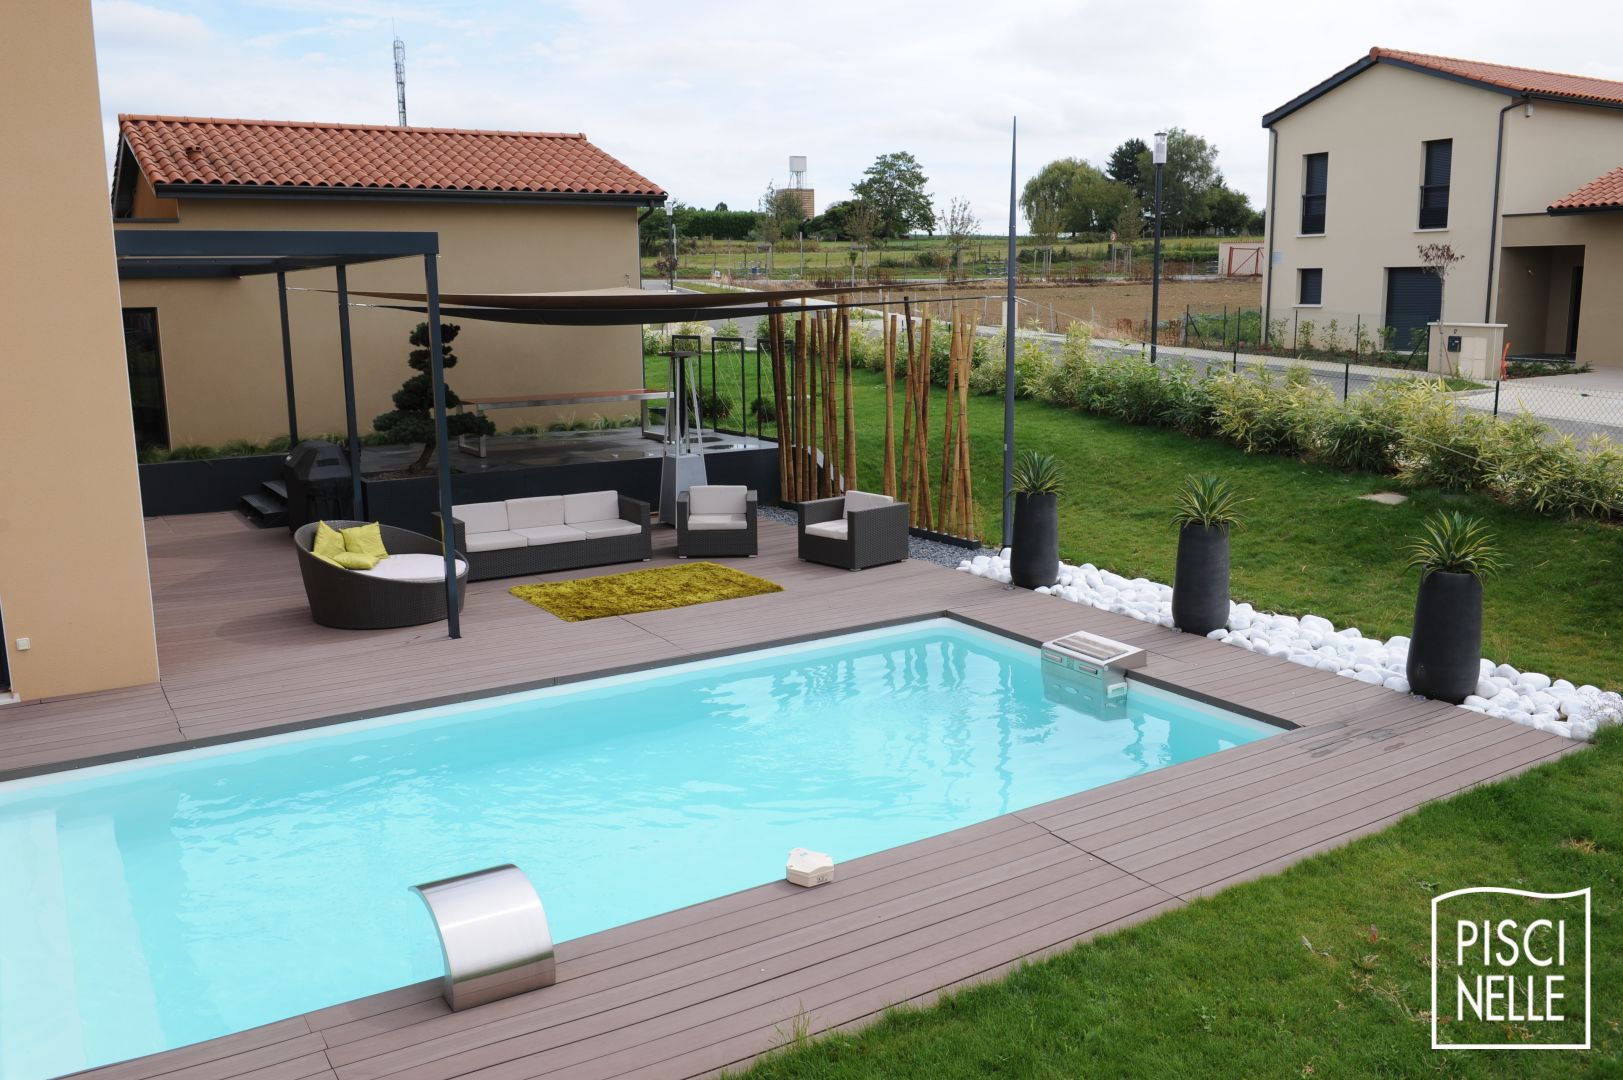 Piscine jardin rectangle vacances arts guides voyages for Comparatif piscine coque ou beton